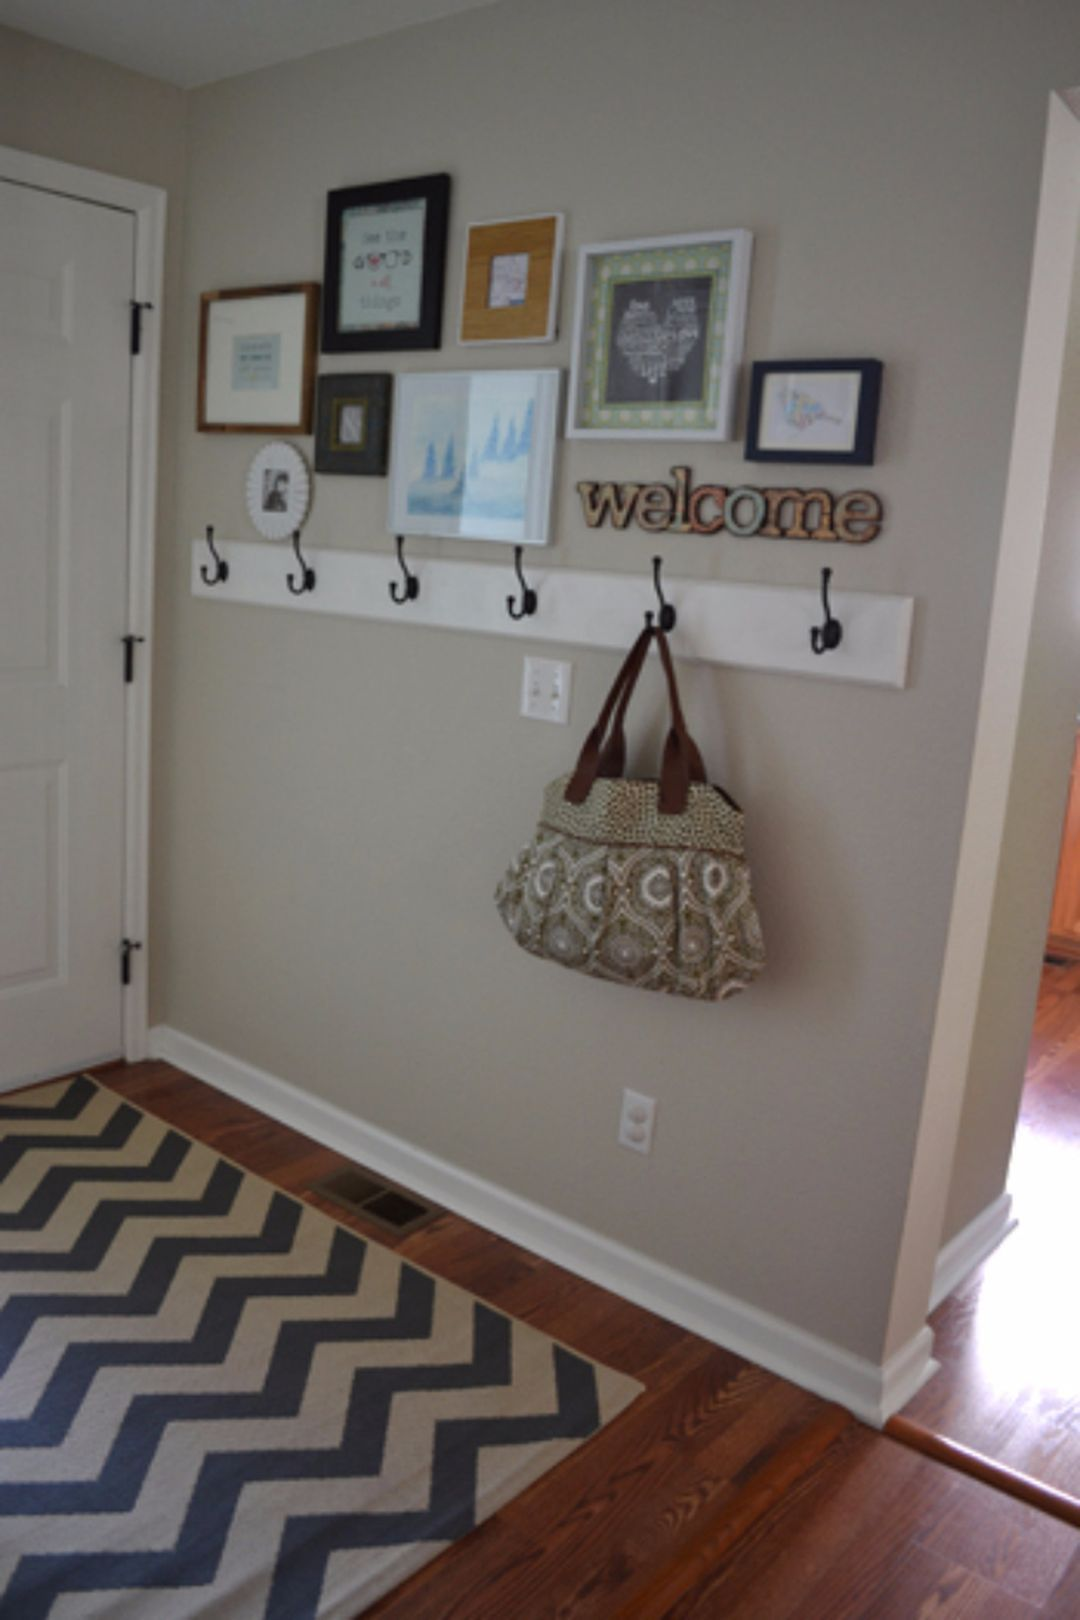 DIY Ideas For Your Entry   Frame Gallery In The Entryway   Cool And  Creative Home Decor Or Entryway And Hall. Modern, Rustic And Classic Decor  On A Budget.